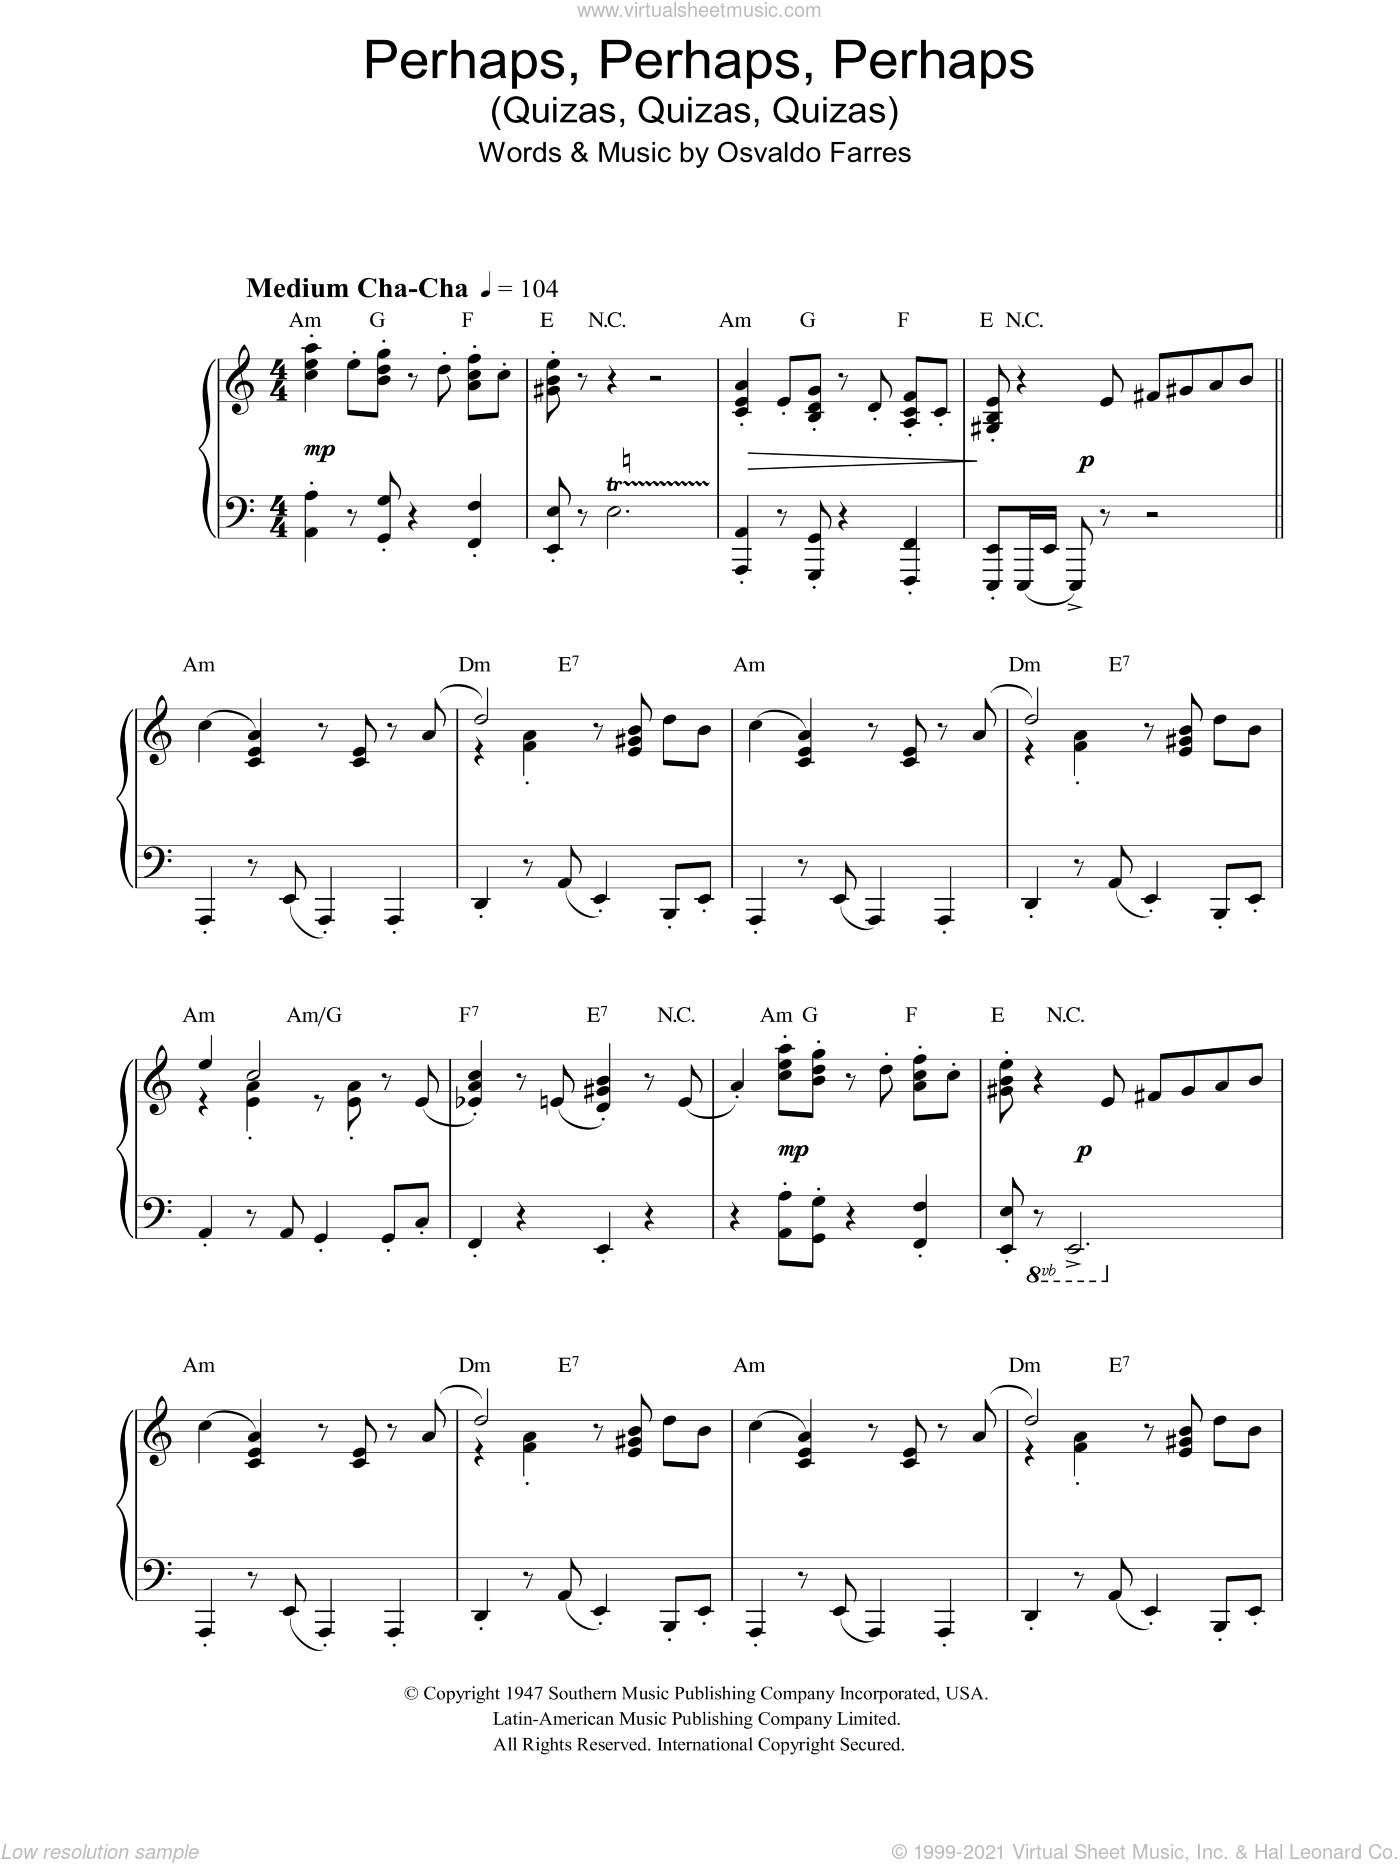 Quizas, Quizas, Quizas (Perhaps, Perhaps, Perhaps) sheet music for piano solo by Osvaldo Farres